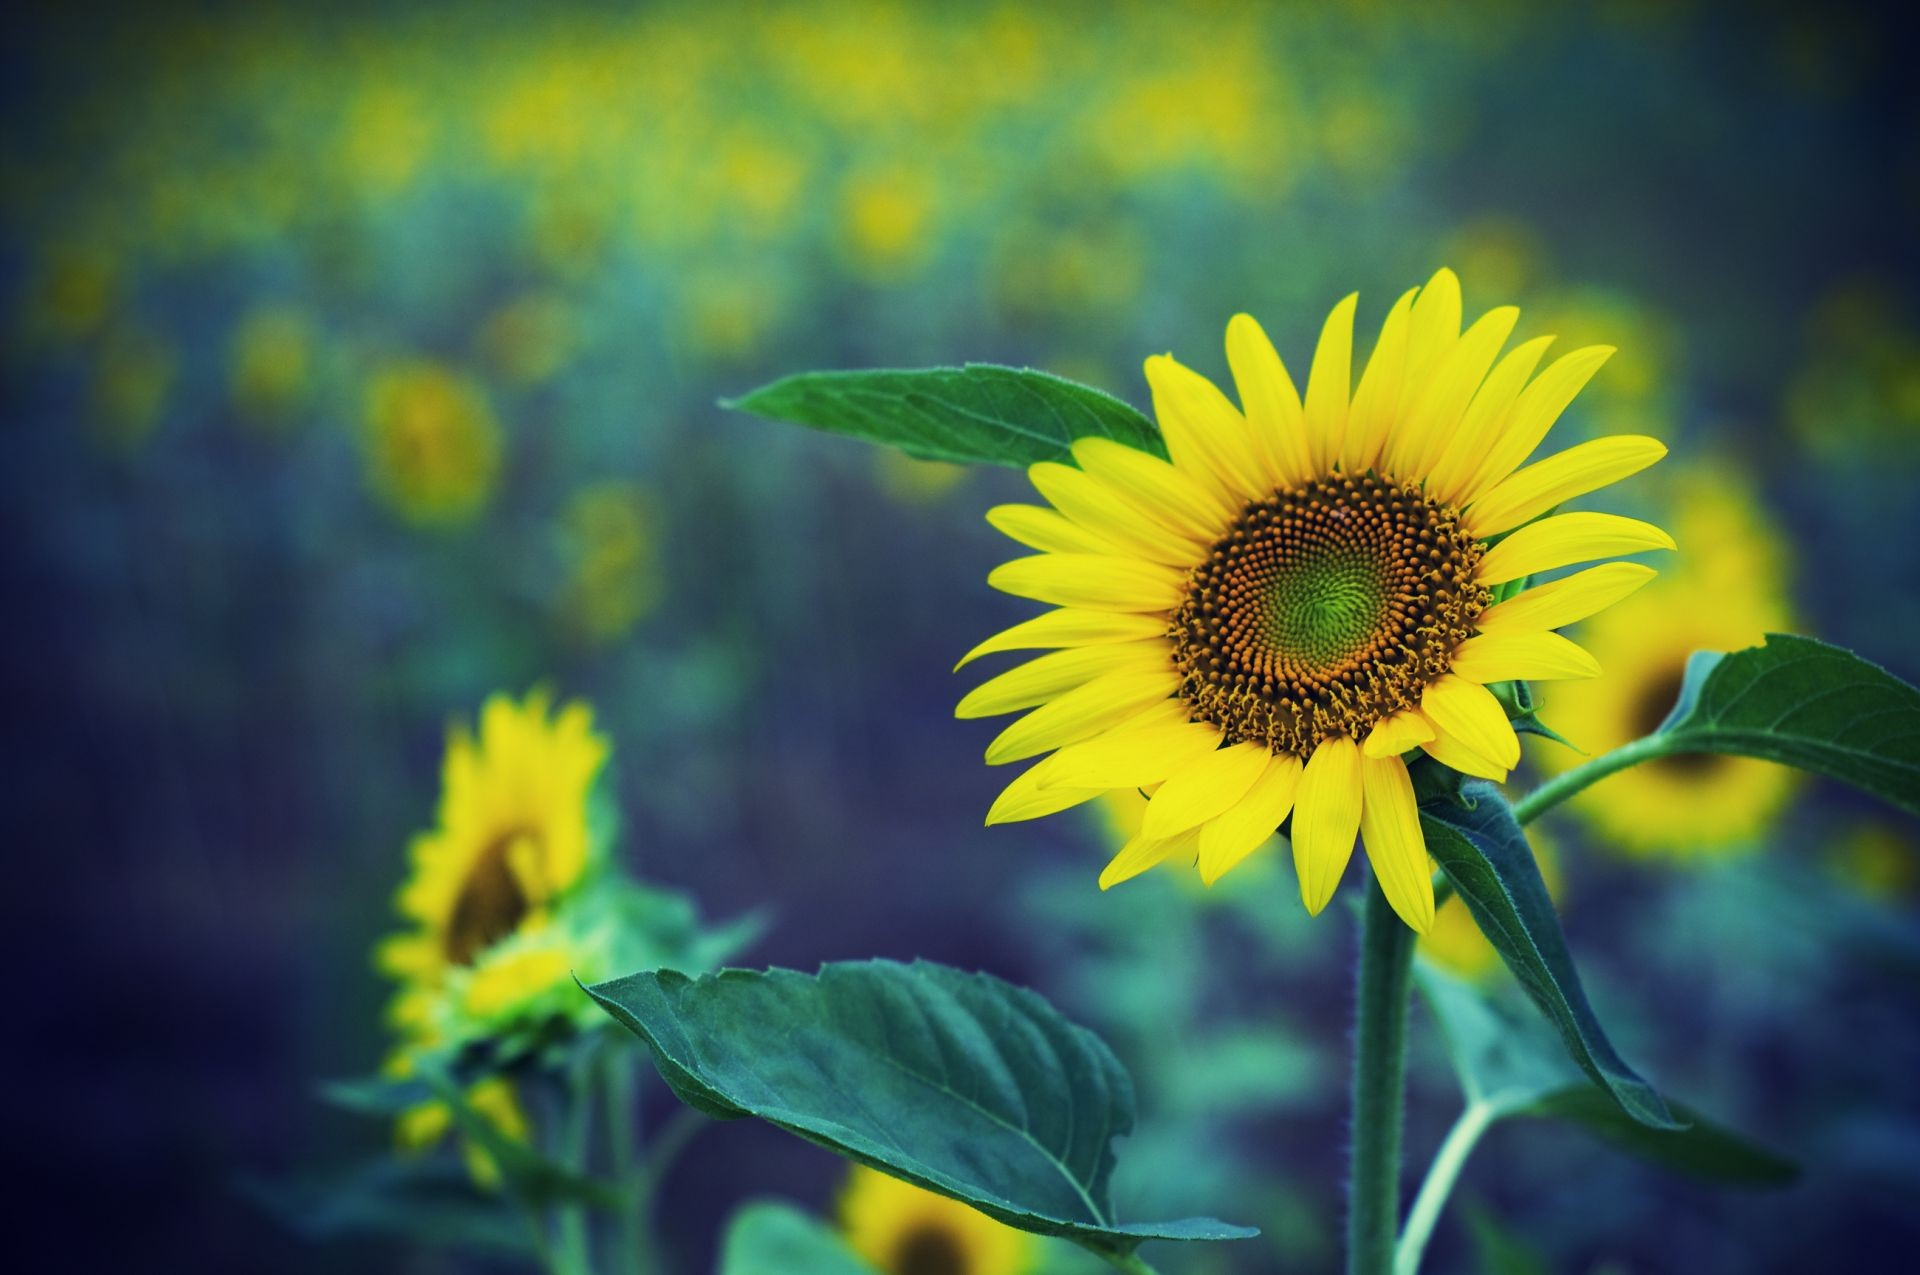 sunflowers nature summer leaf flora flower sunflower growth bright fair weather sun outdoors field color rural